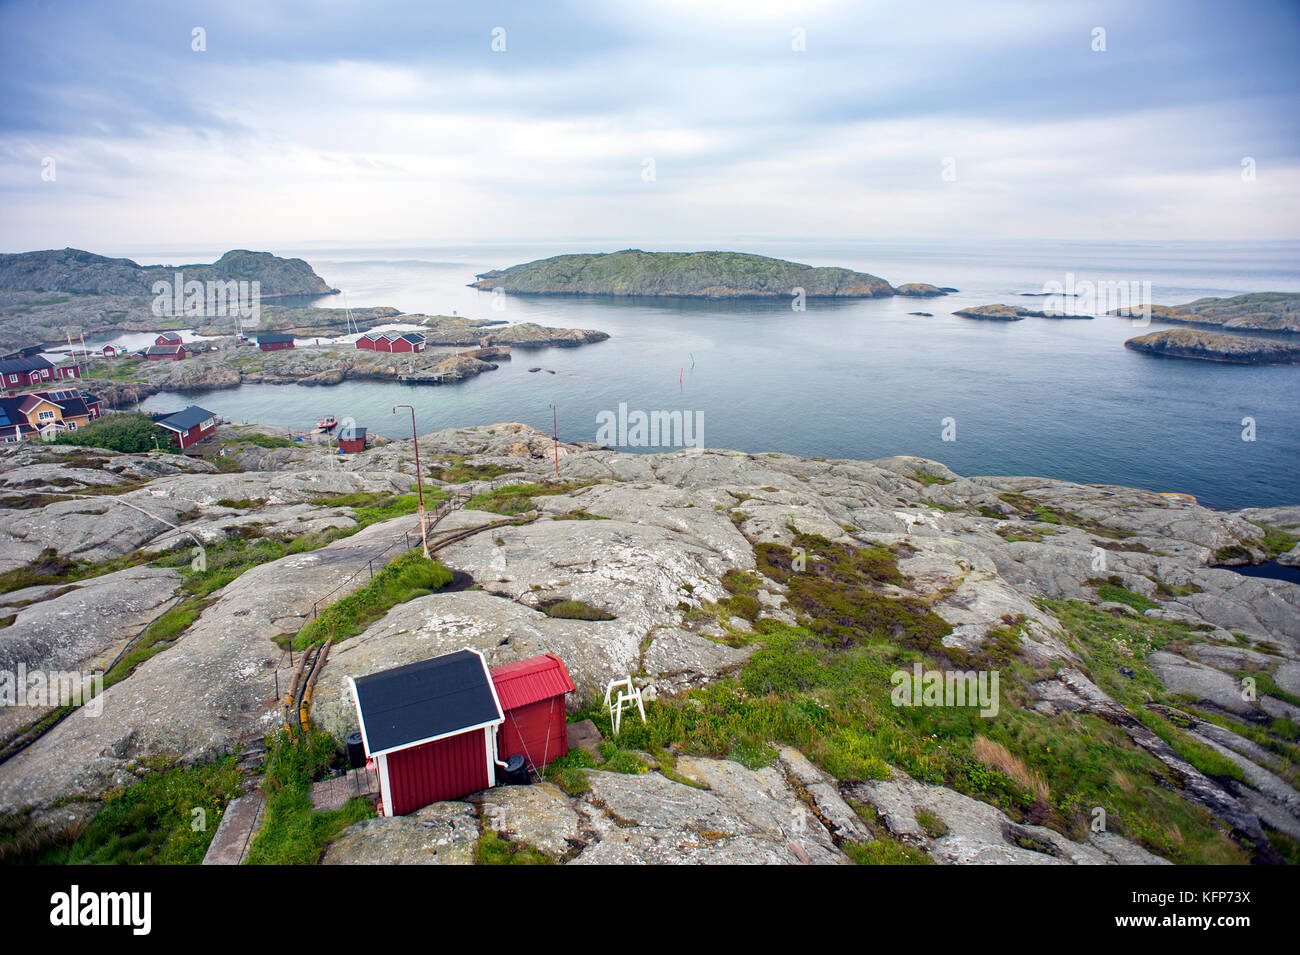 The Weather Island Sweden Stock Photos Clutch Natural Islands A Of Bare Faced Rocks In Bohusln Archipelago